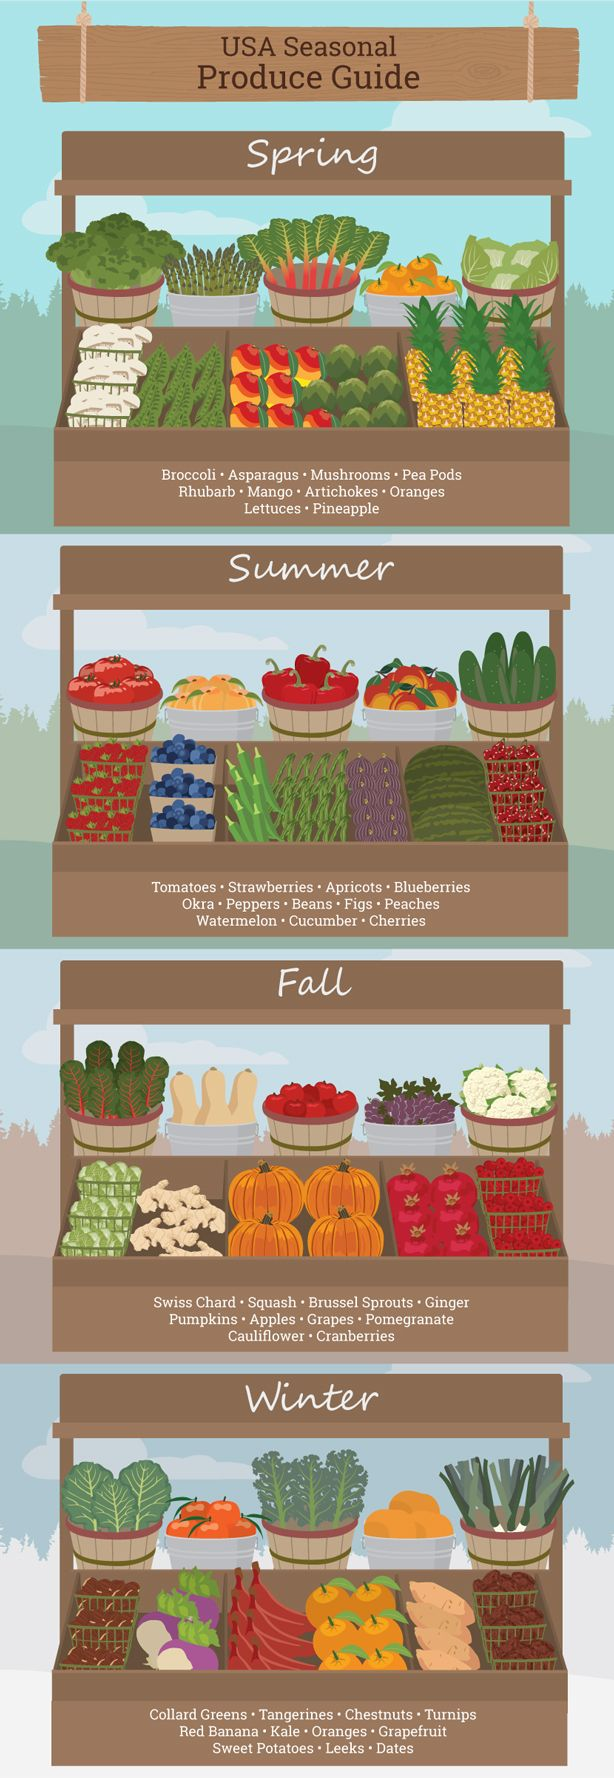 Guide to Farmers Markets: Benefits Beyond the Plate